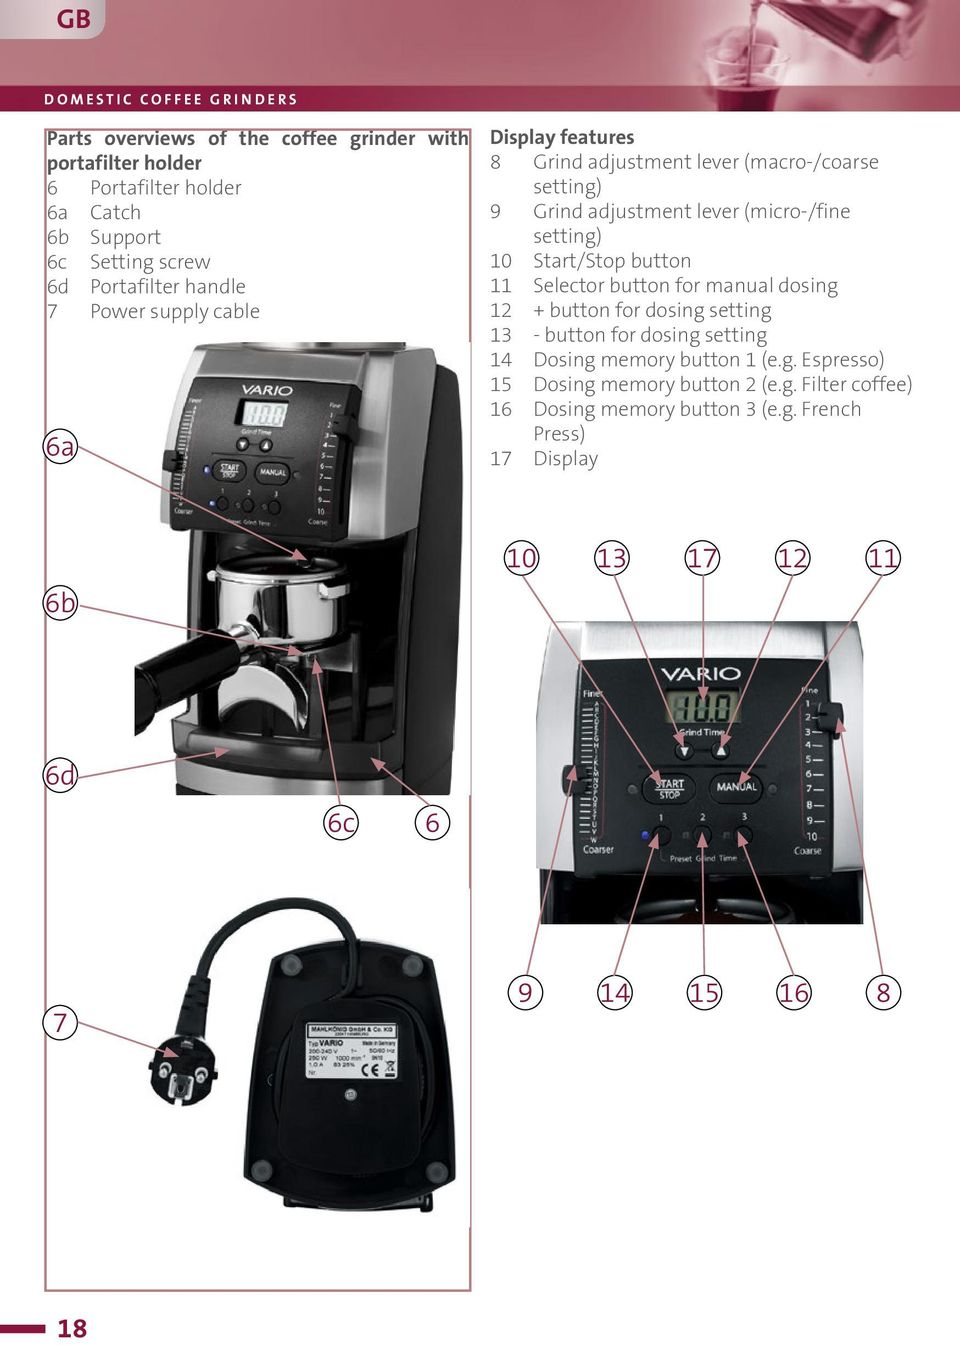 (micro-/fine setting) 10 Start/Stop button 11 Selector button for manual dosing 12 + button for dosing setting 13 - button for dosing setting